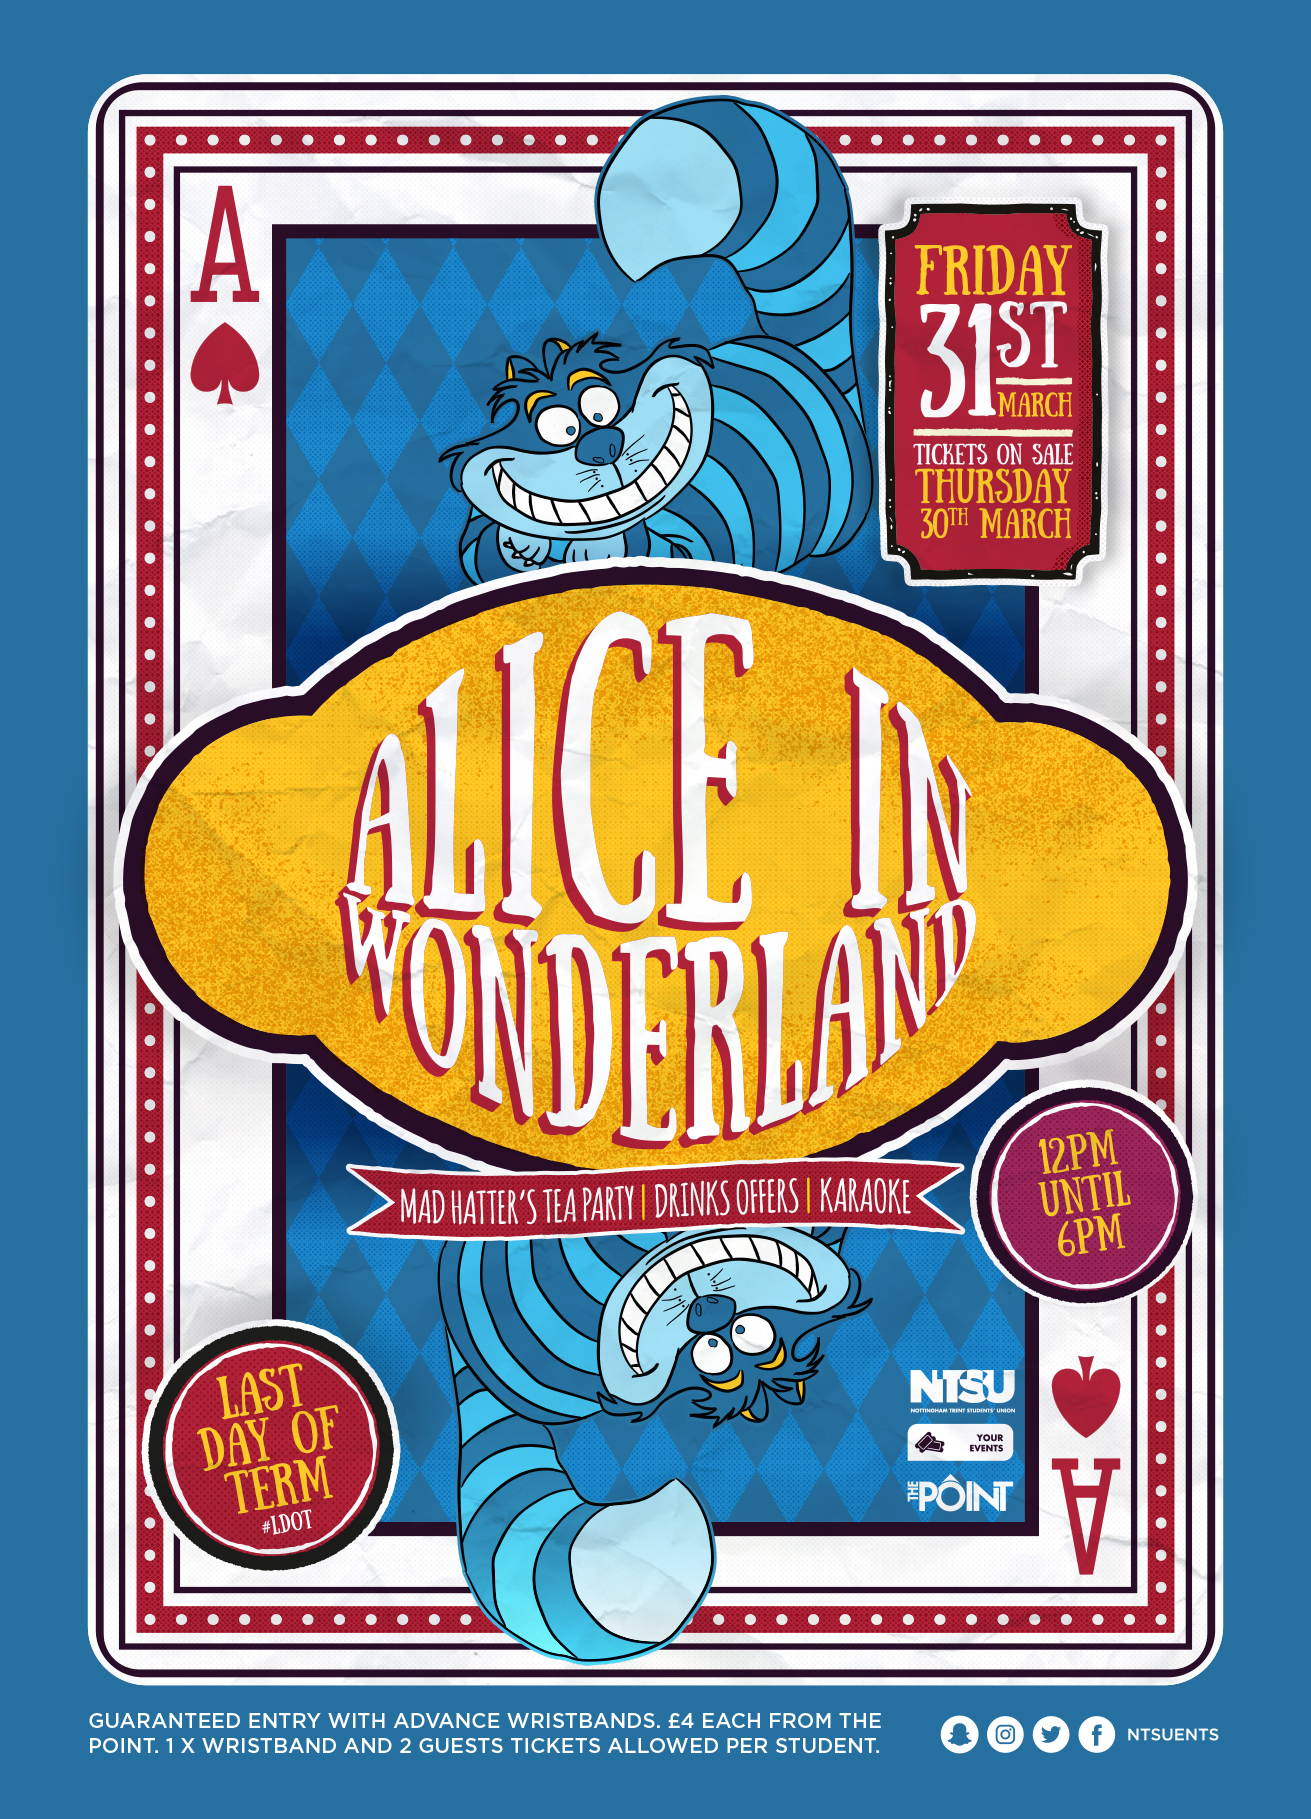 ldot-alice-in-wonderland-clifton-flyers-a6-1